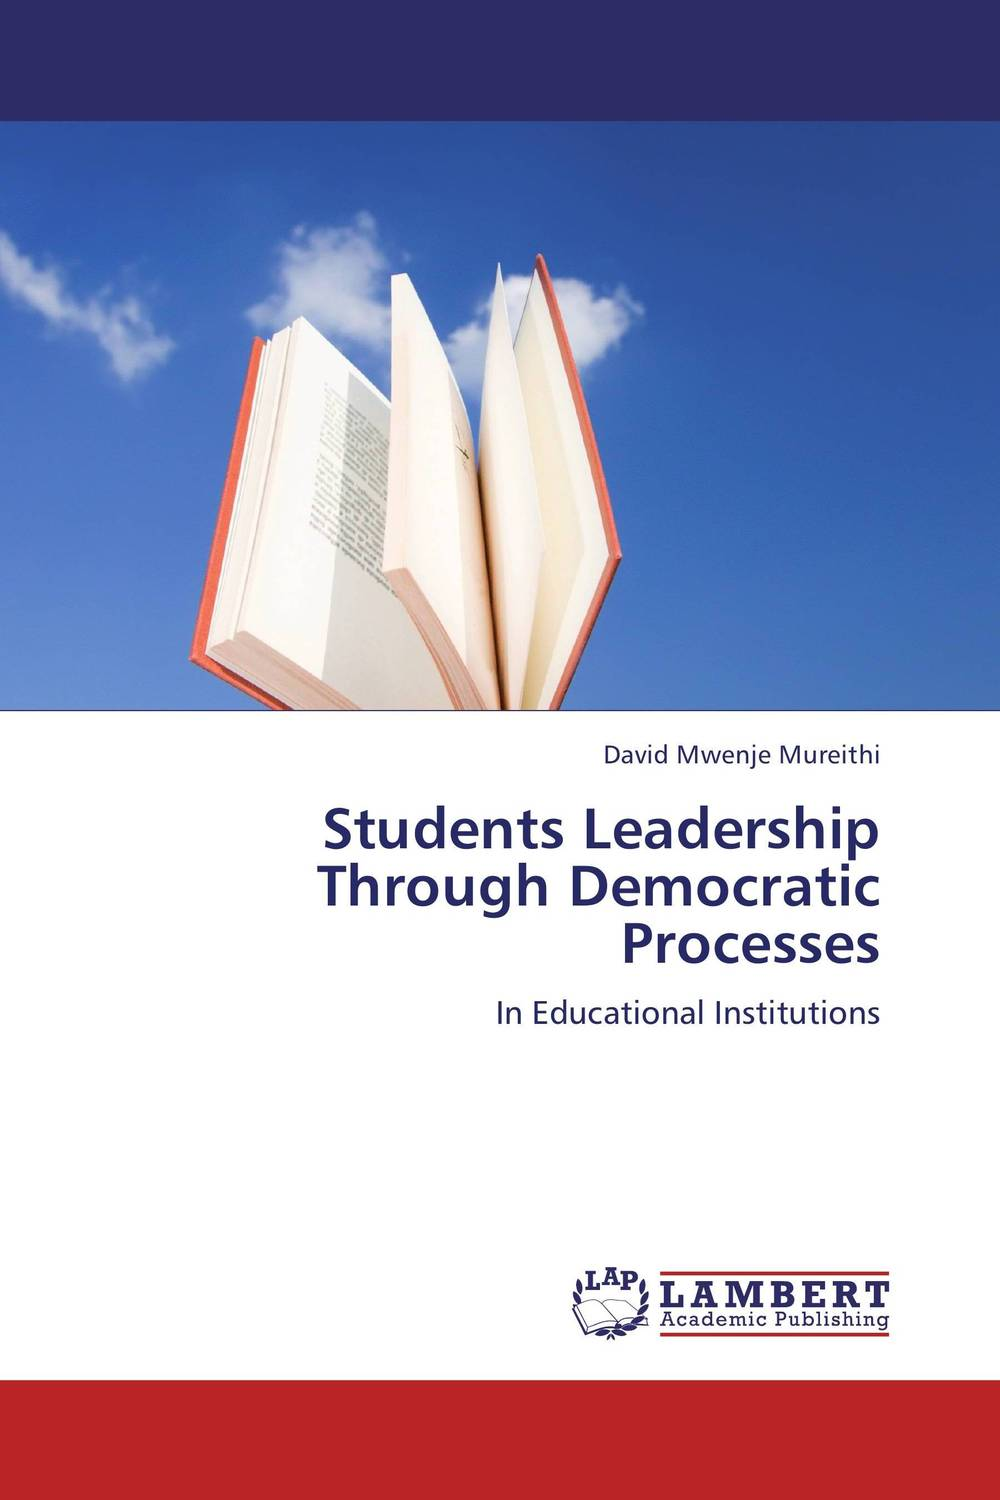 Students Leadership Through Democratic Processes role of school leadership in promoting moral integrity among students